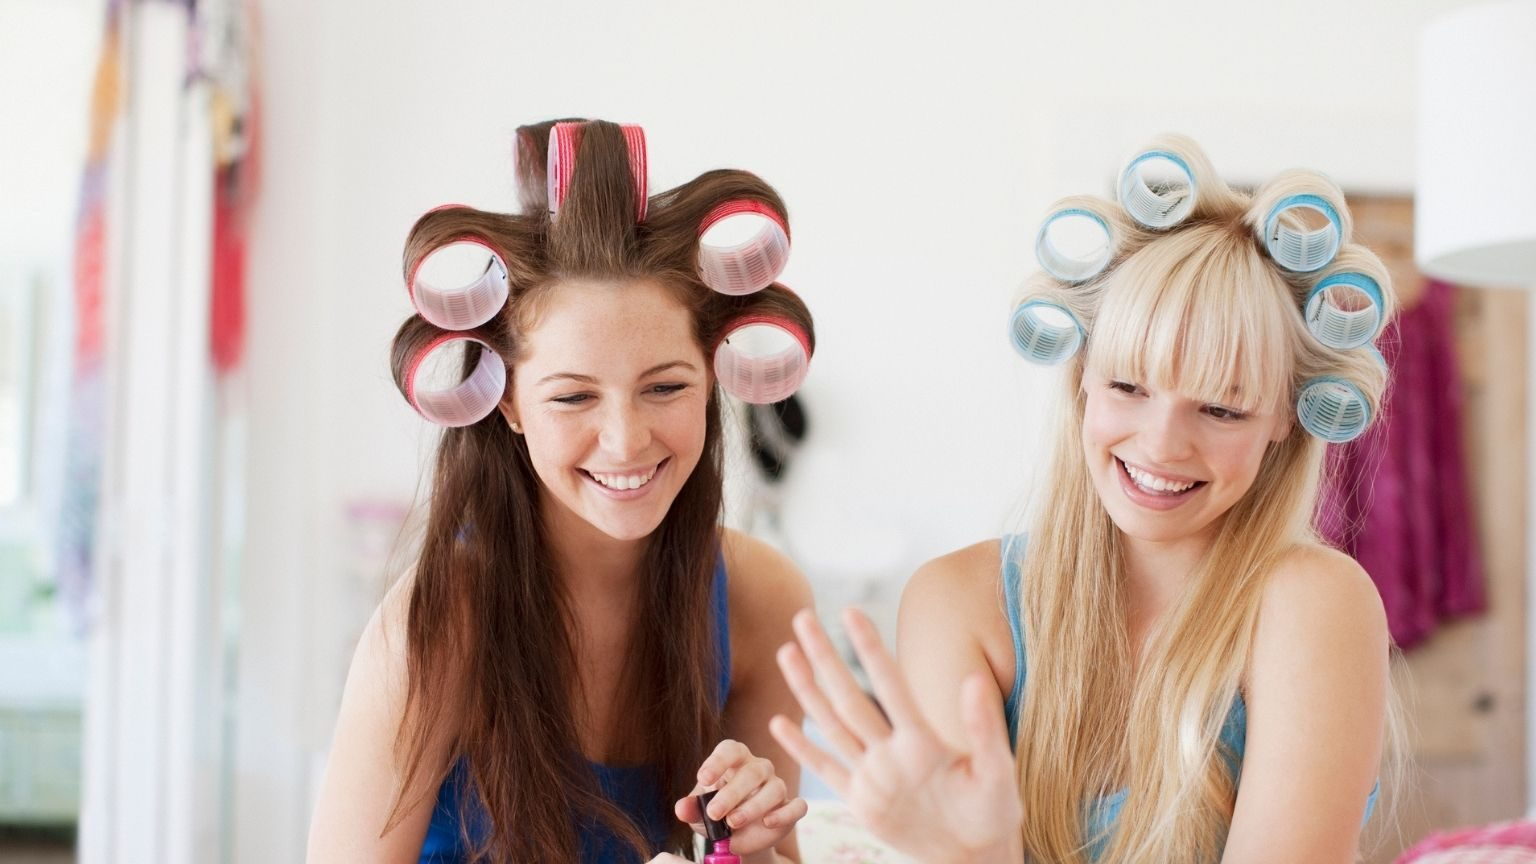 Women with curlers in hair